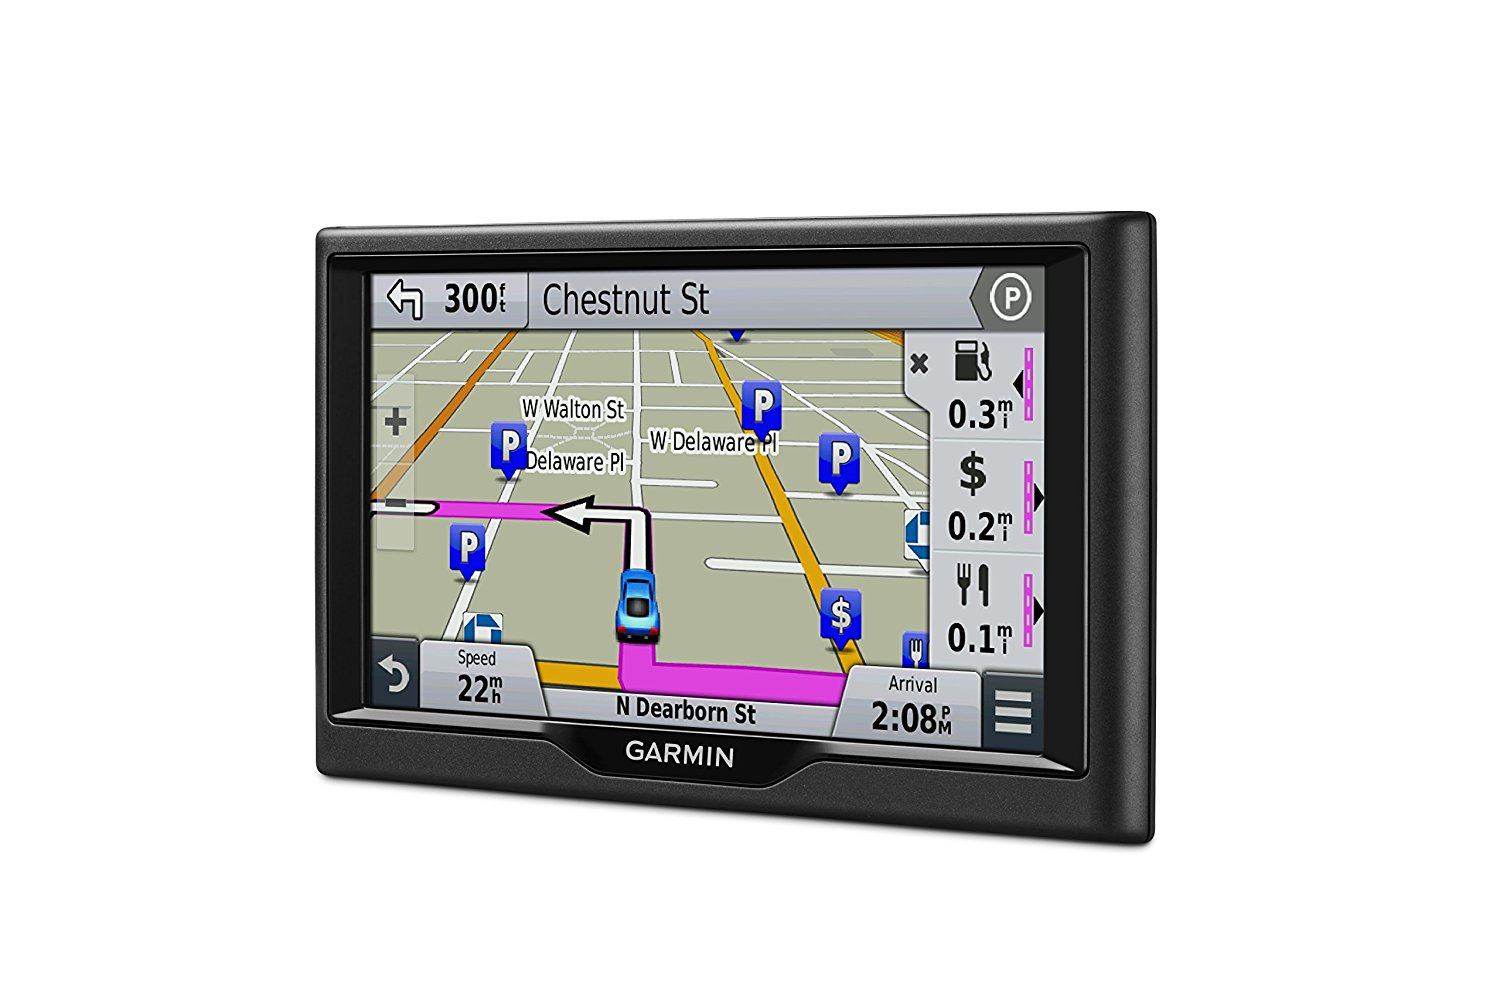 Garmin Nuvi 57 LMT Review 5 inch GPS navigator With Lifetime ... on garmin with lifetime map updates, garmin gps map update, garmin nuvi with lifetime maps, garmin gps lifetime updates, garmin nuvi lifetime maps that has, garmin nuvi 1490t map updates, life time garmin map updates, garmin lifetime updater, garmin nuvi 260w map updates, garmin nuvi 255w map updates,